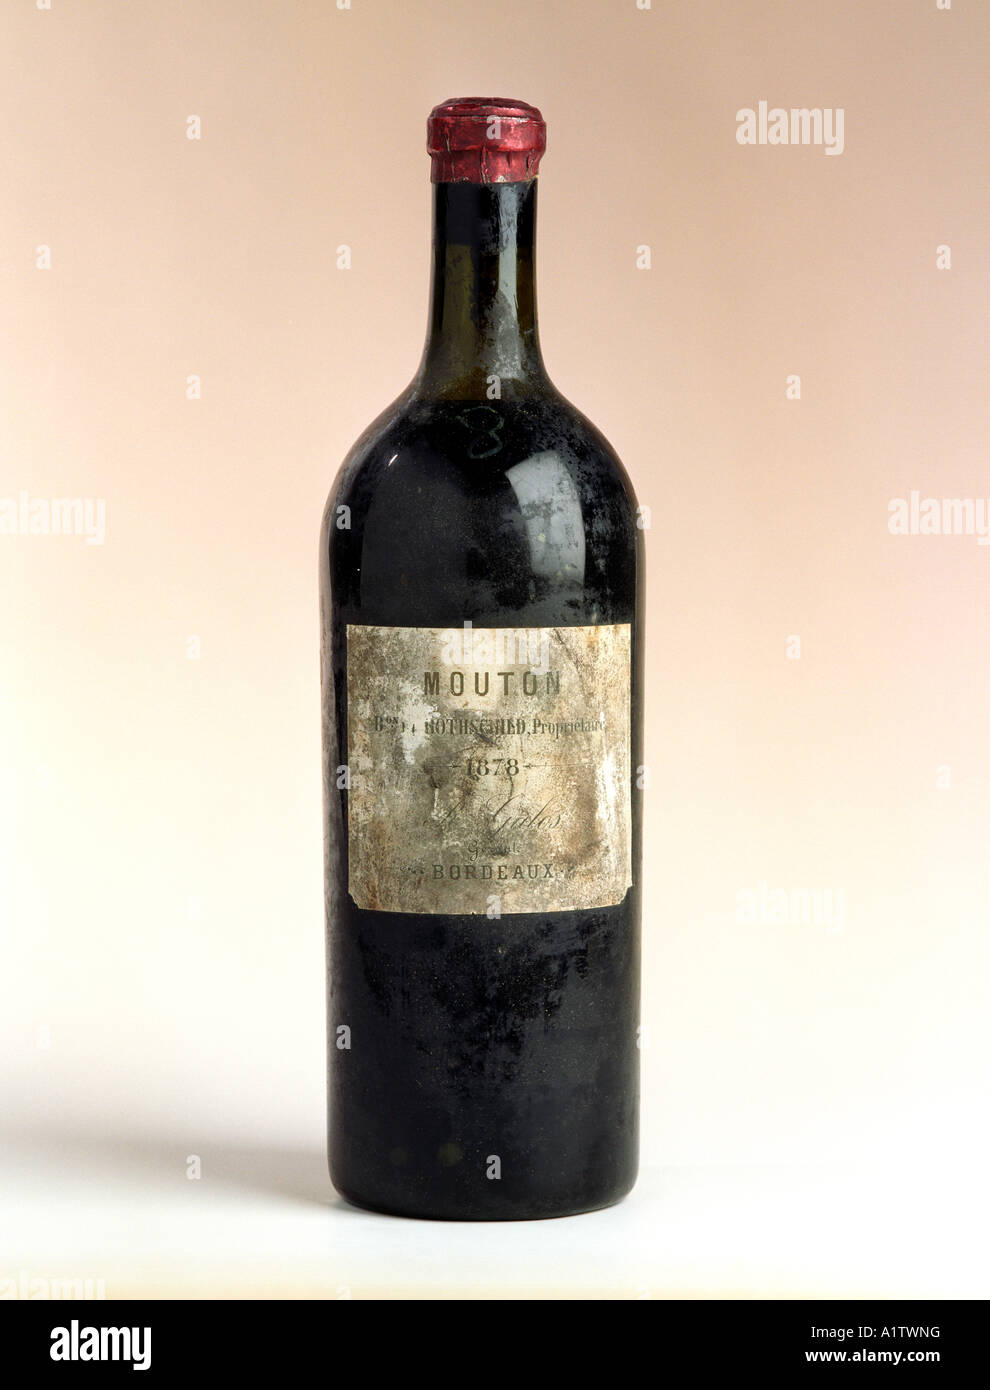 A very rare bottle of 1878 Mouton Rothschild red wine from the Bordeaux region of France - Stock Image